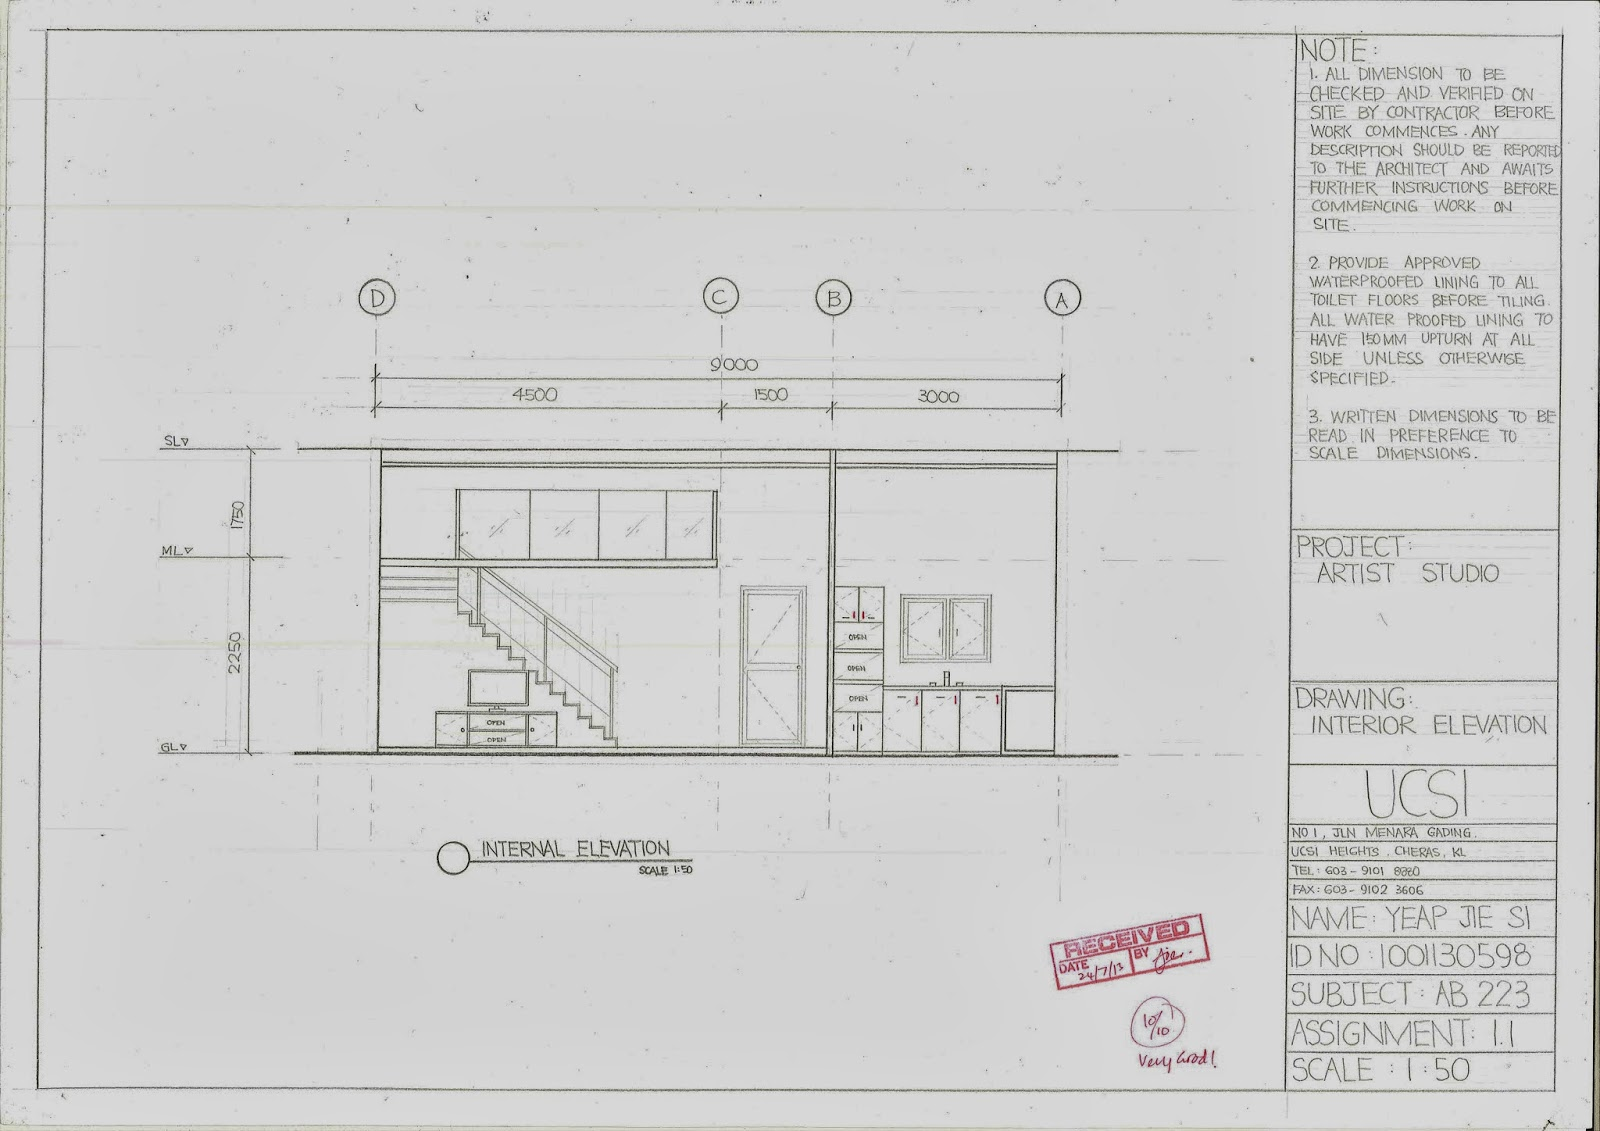 Plan Elevation Projection : Master piece assignment orthographic projection